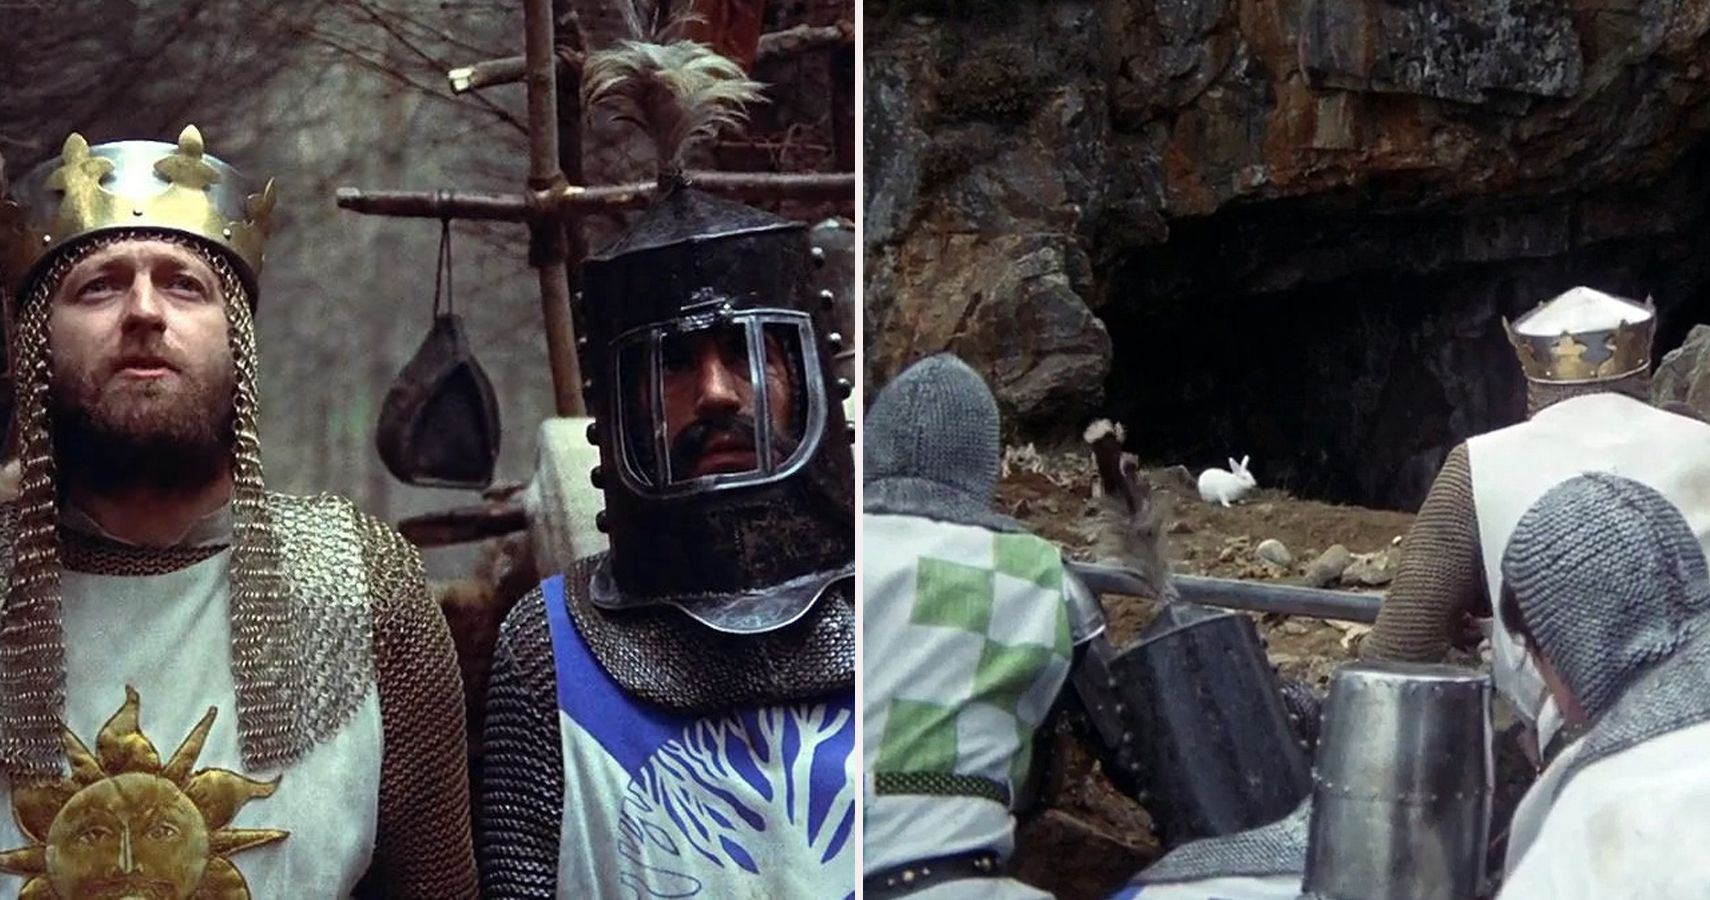 10 Wild Details Behind The Making Of Monty Python And The Holy Grail